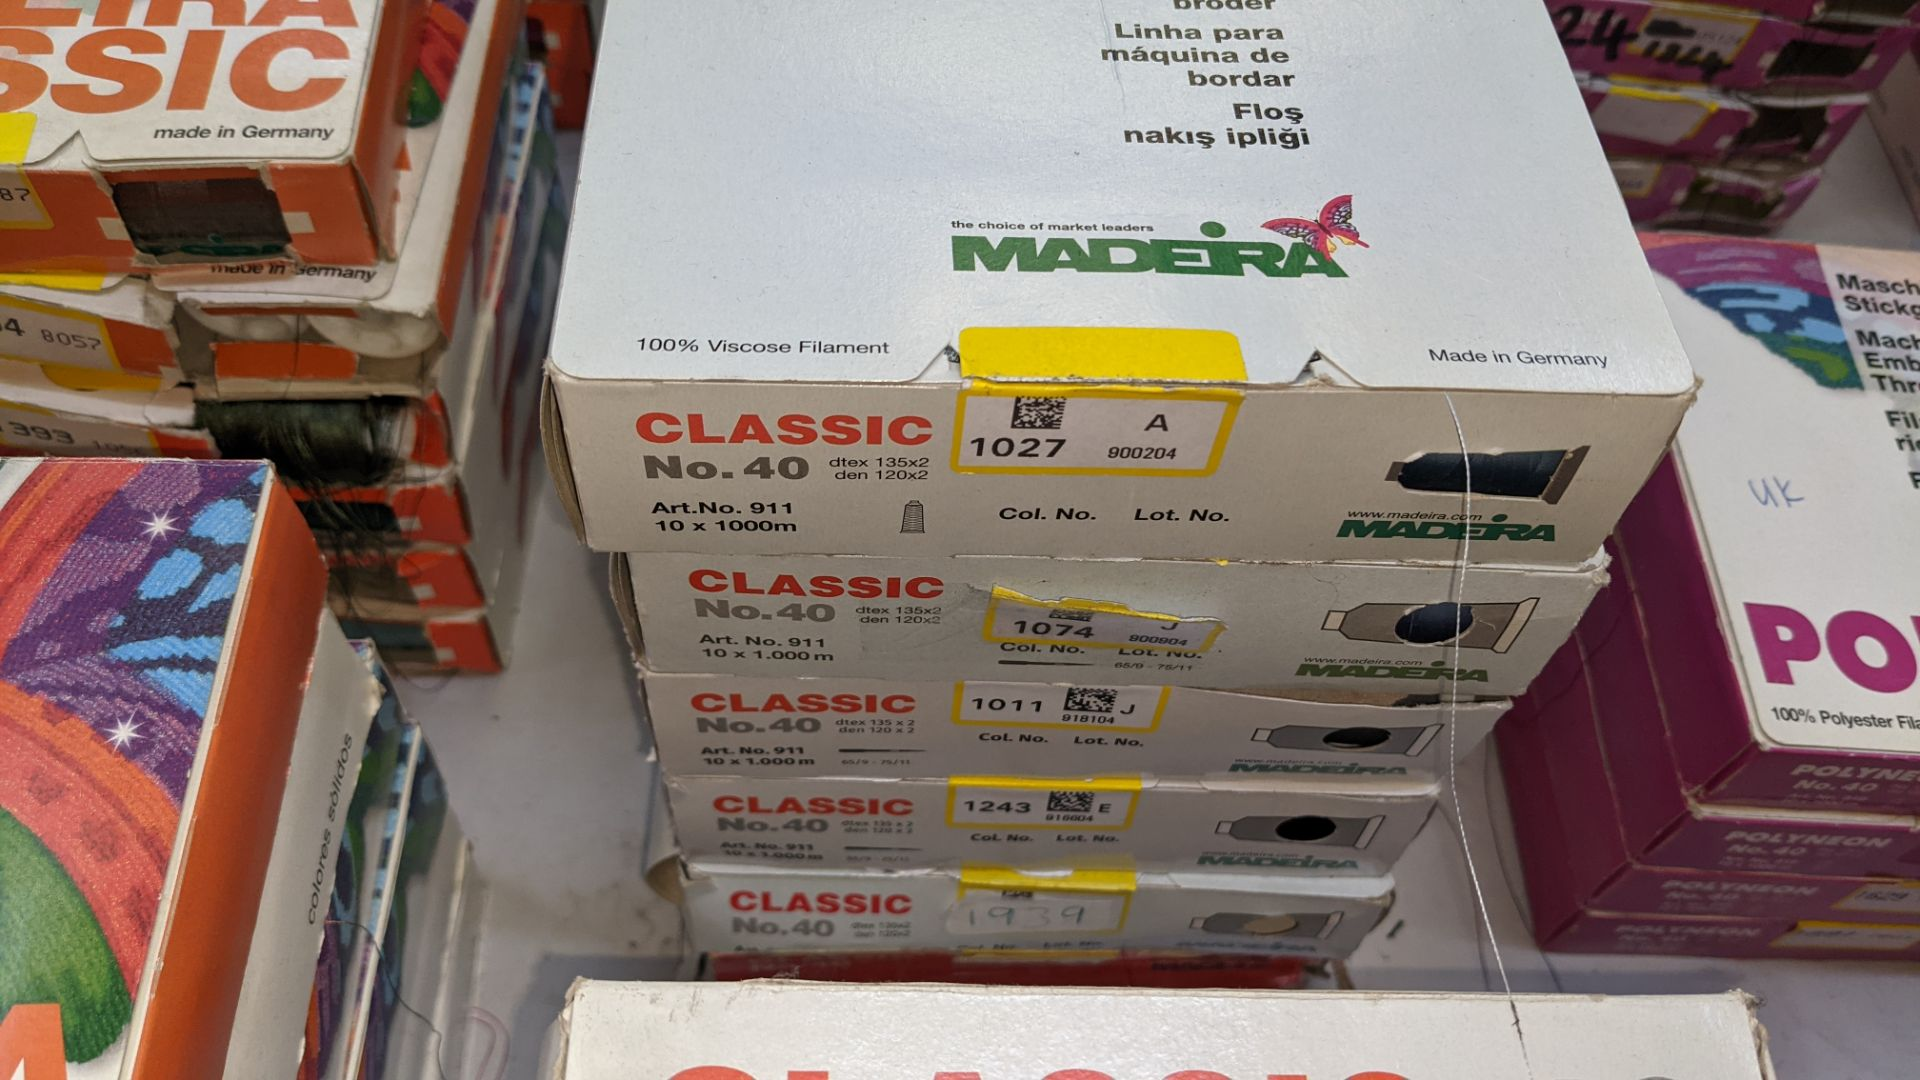 22 boxes of Madeira Classic No. 40 rayon embroidery thread - Image 6 of 11